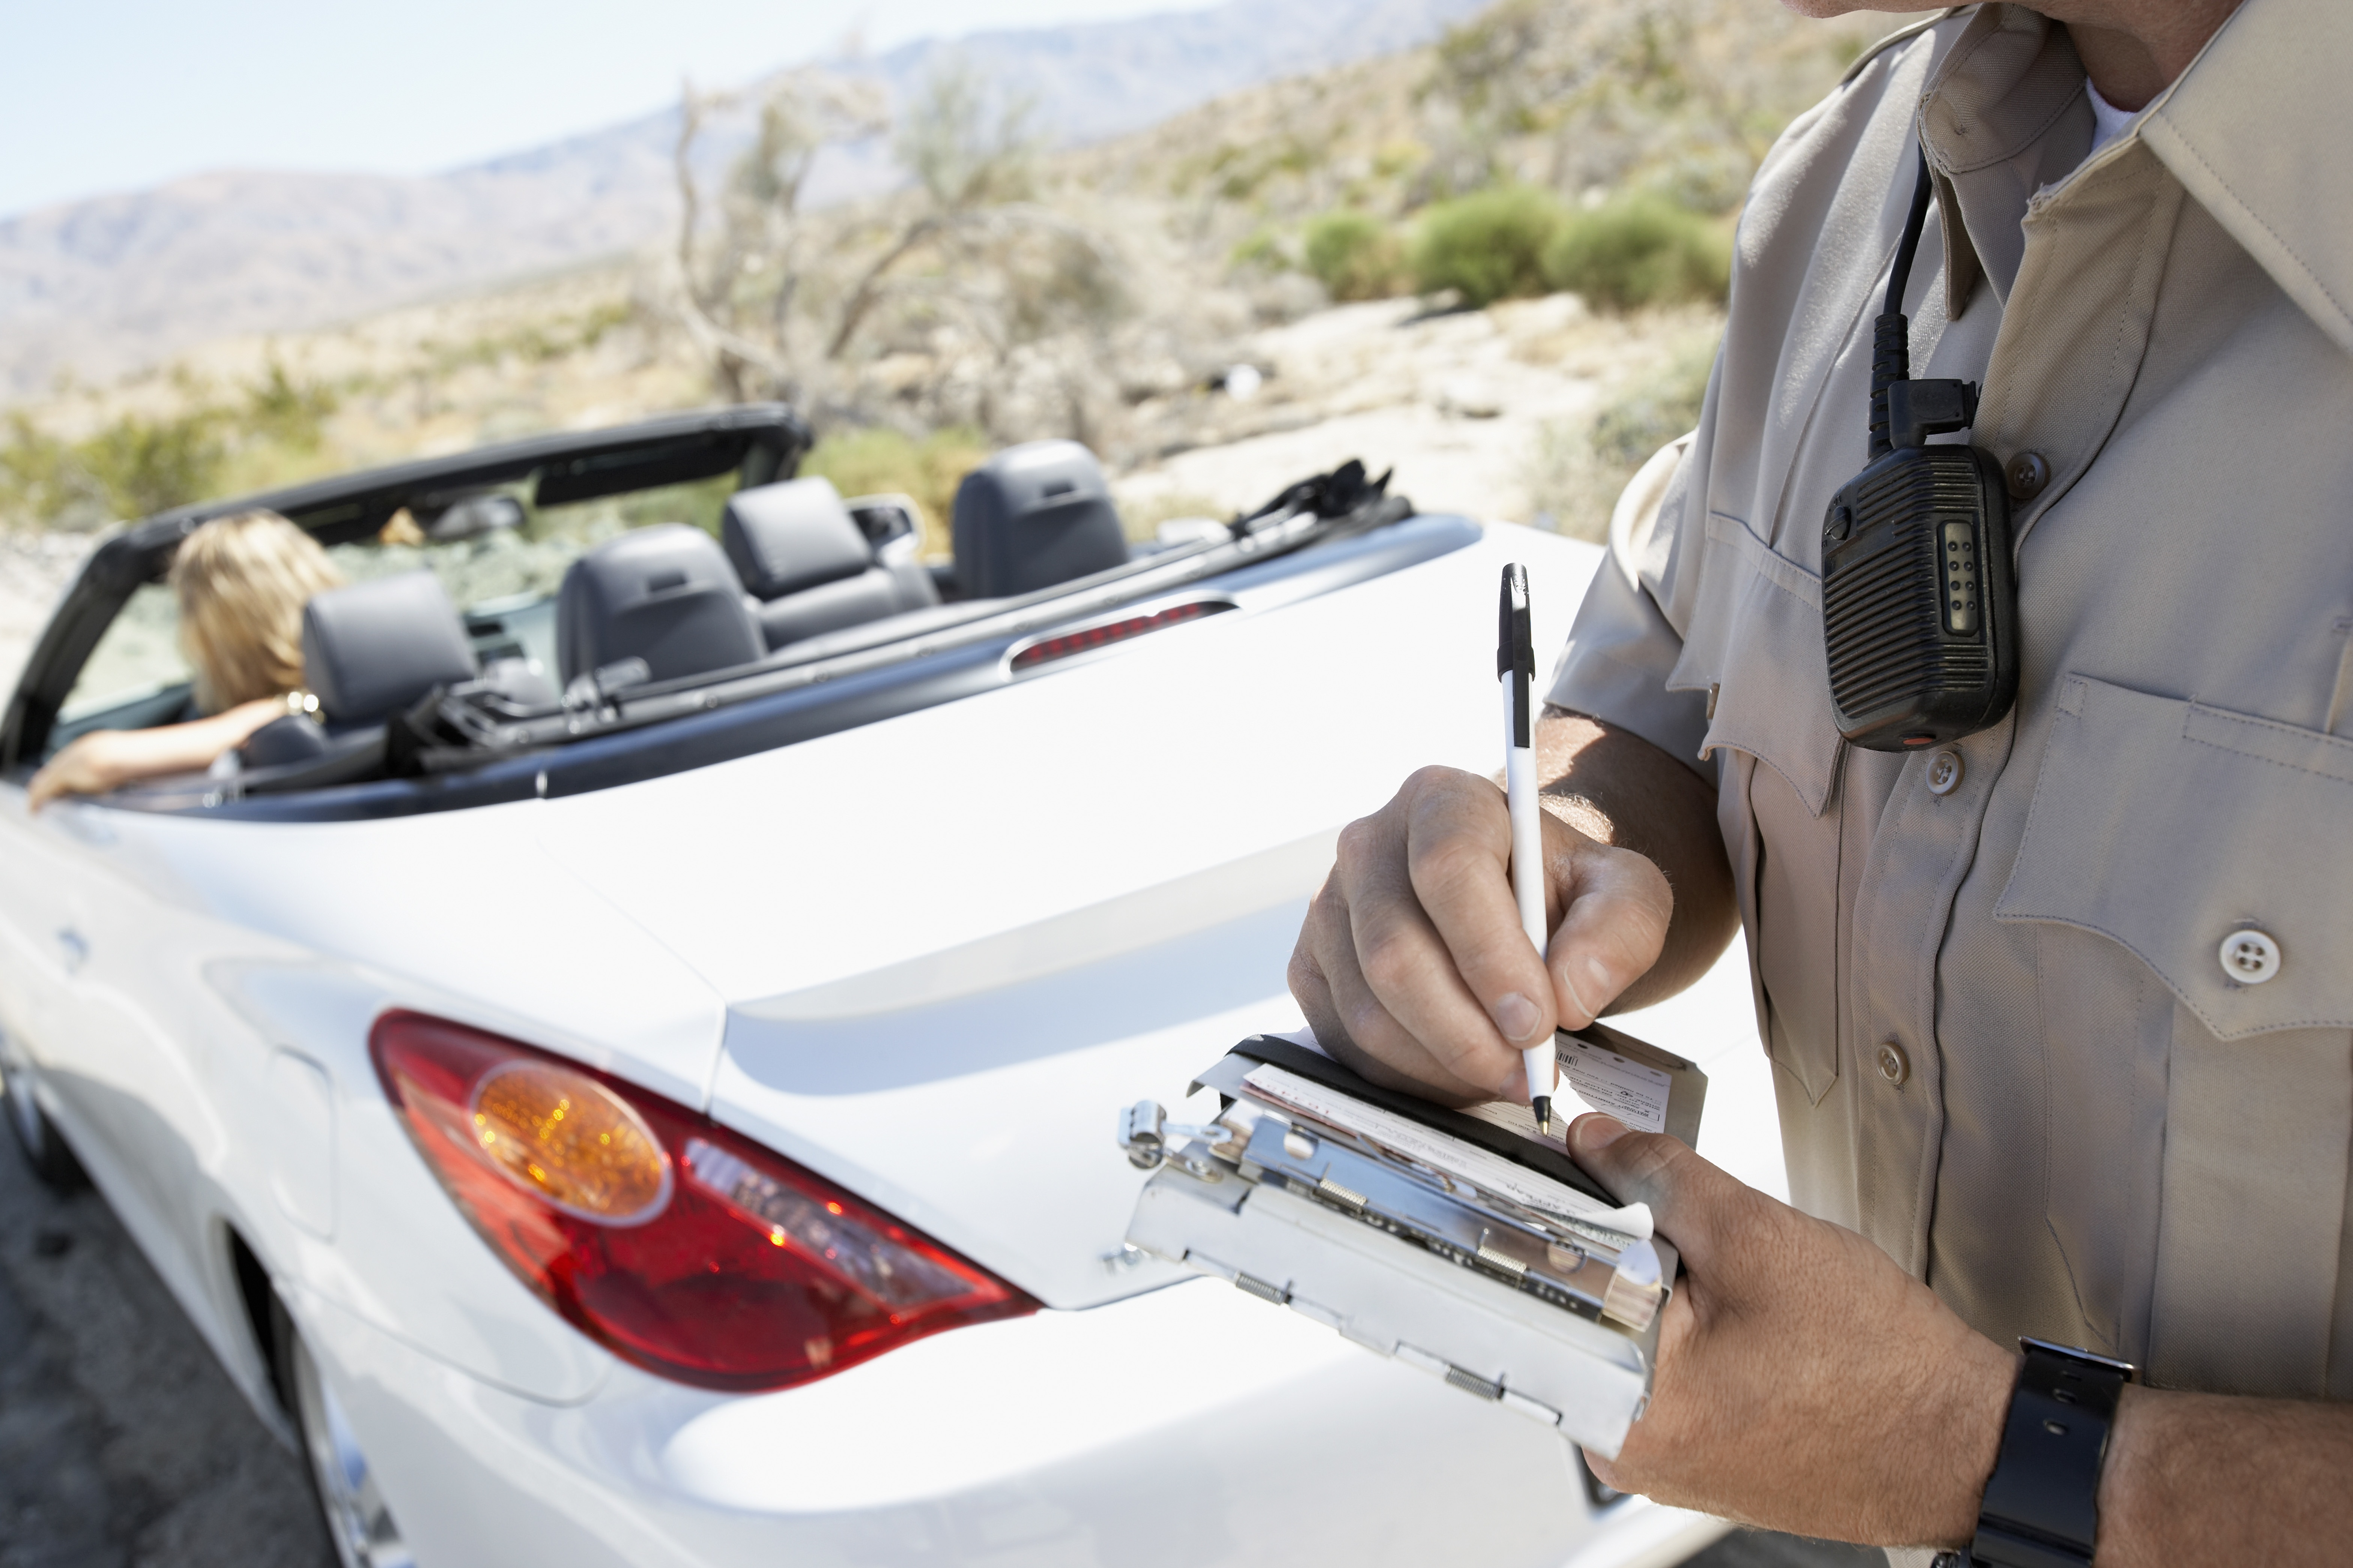 GPS tracking for police and law enforcement helps keep officers, suspects, and the community safer